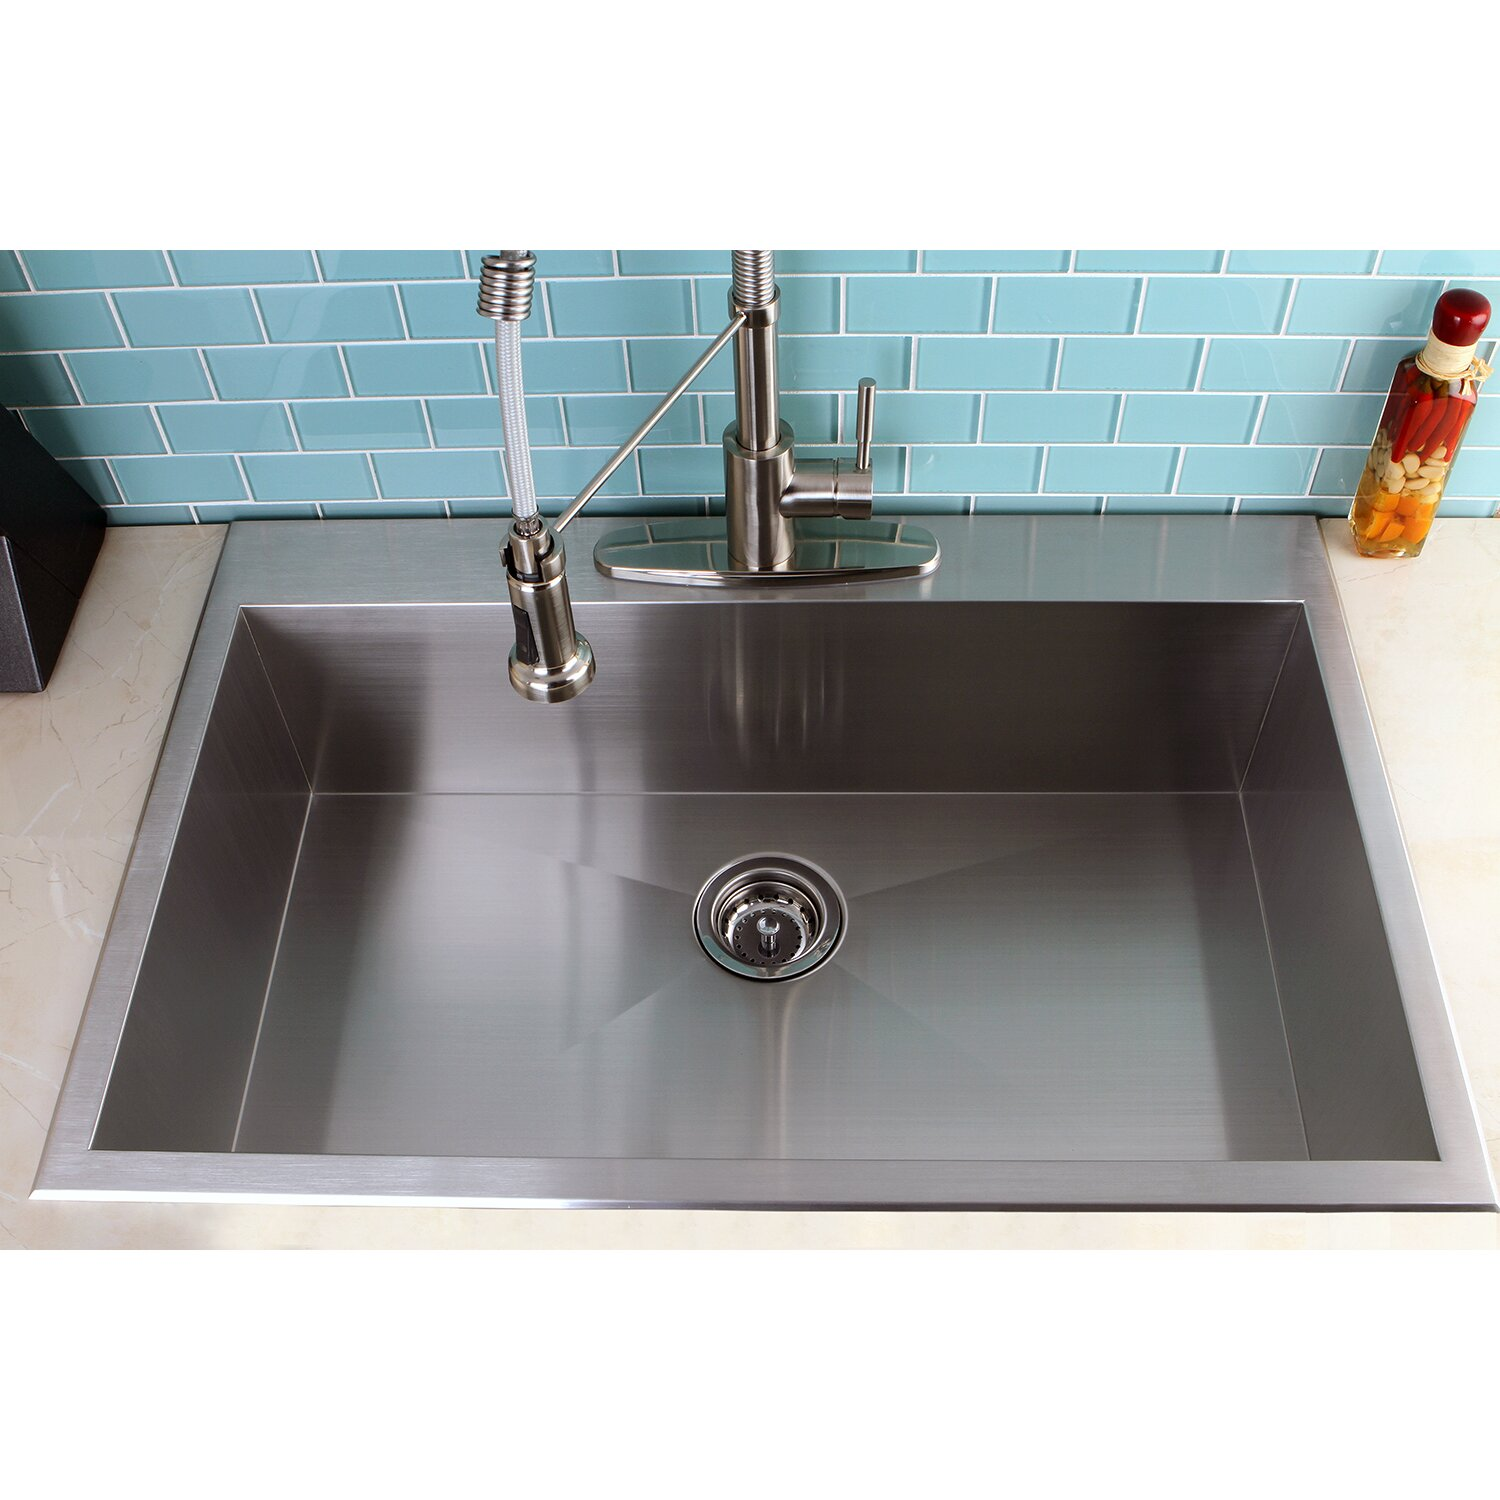 Single Basin Kitchen Sink 33 X 22 - 3d House Drawing •